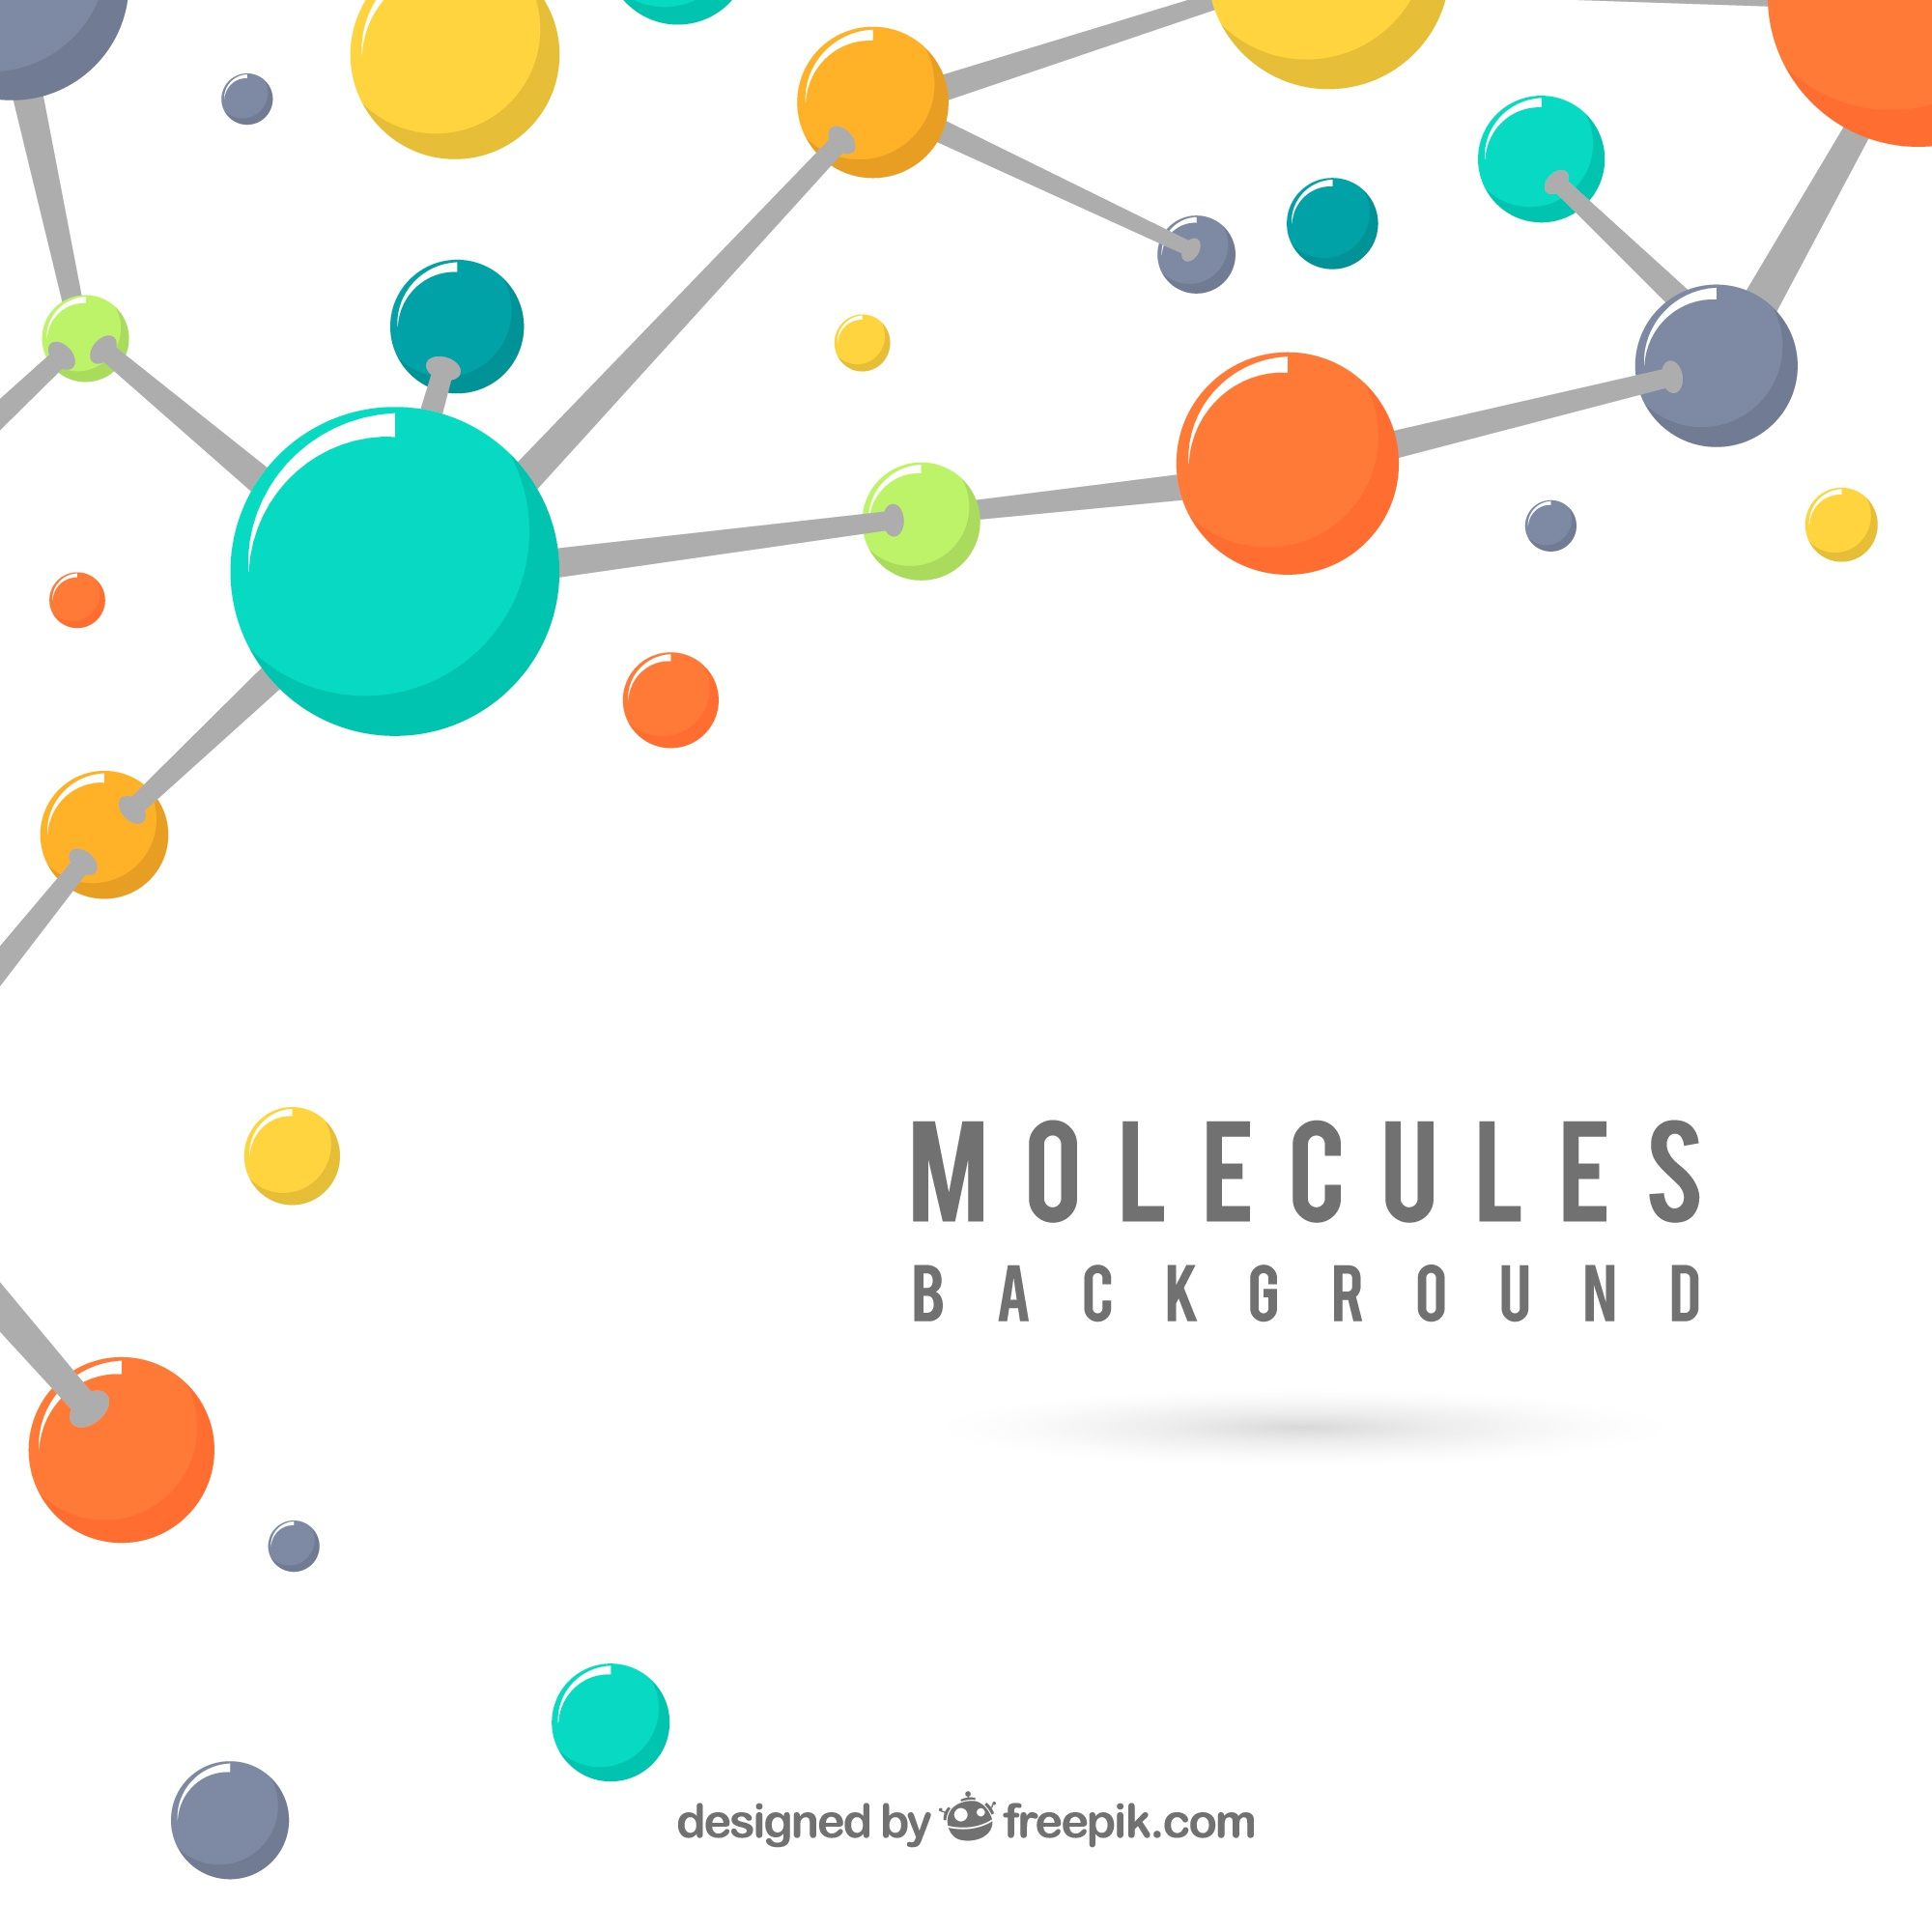 Background of molecular structures